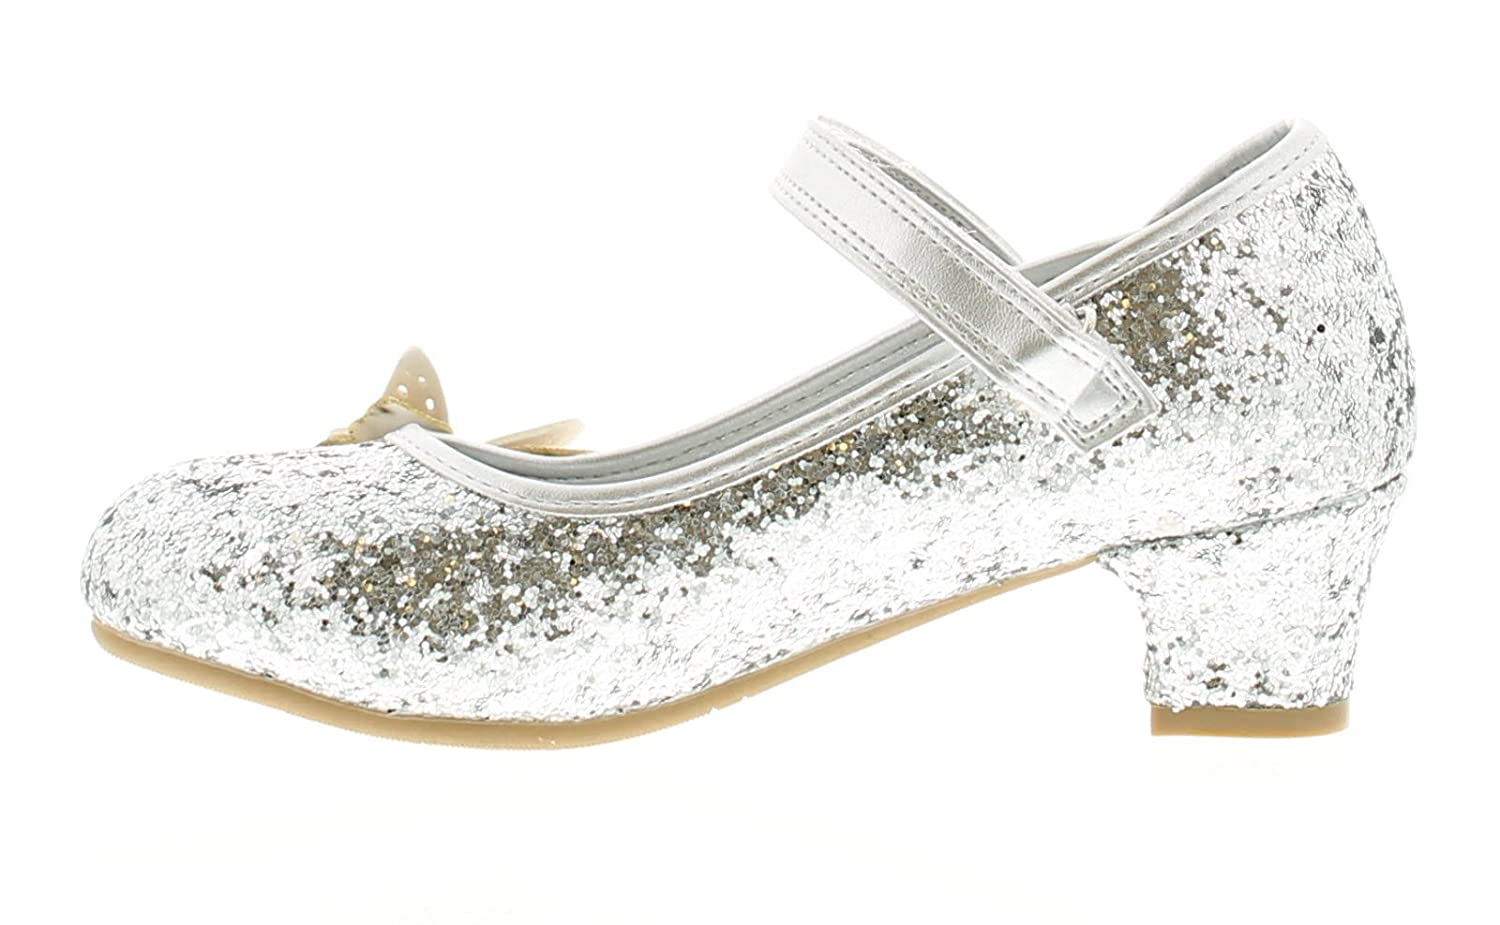 Goody 2 Shoes Sinead Girls Party Shoes Silver - Silver - UK Size 13:  Amazon.co.uk: Shoes & Bags